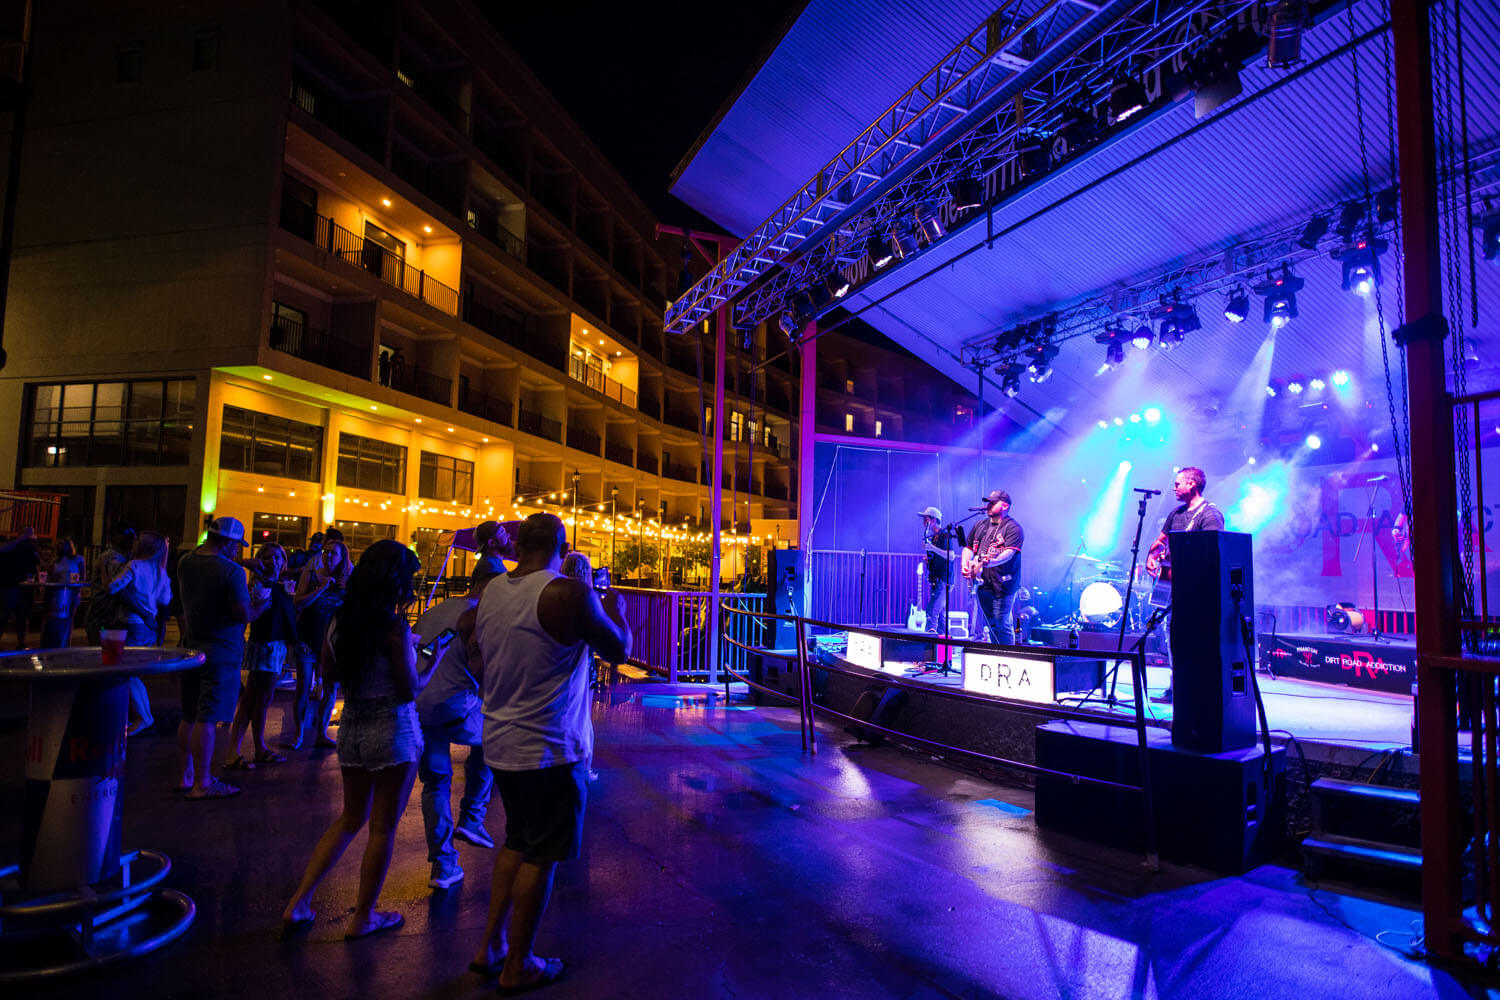 Live music is performed on stage at toad island